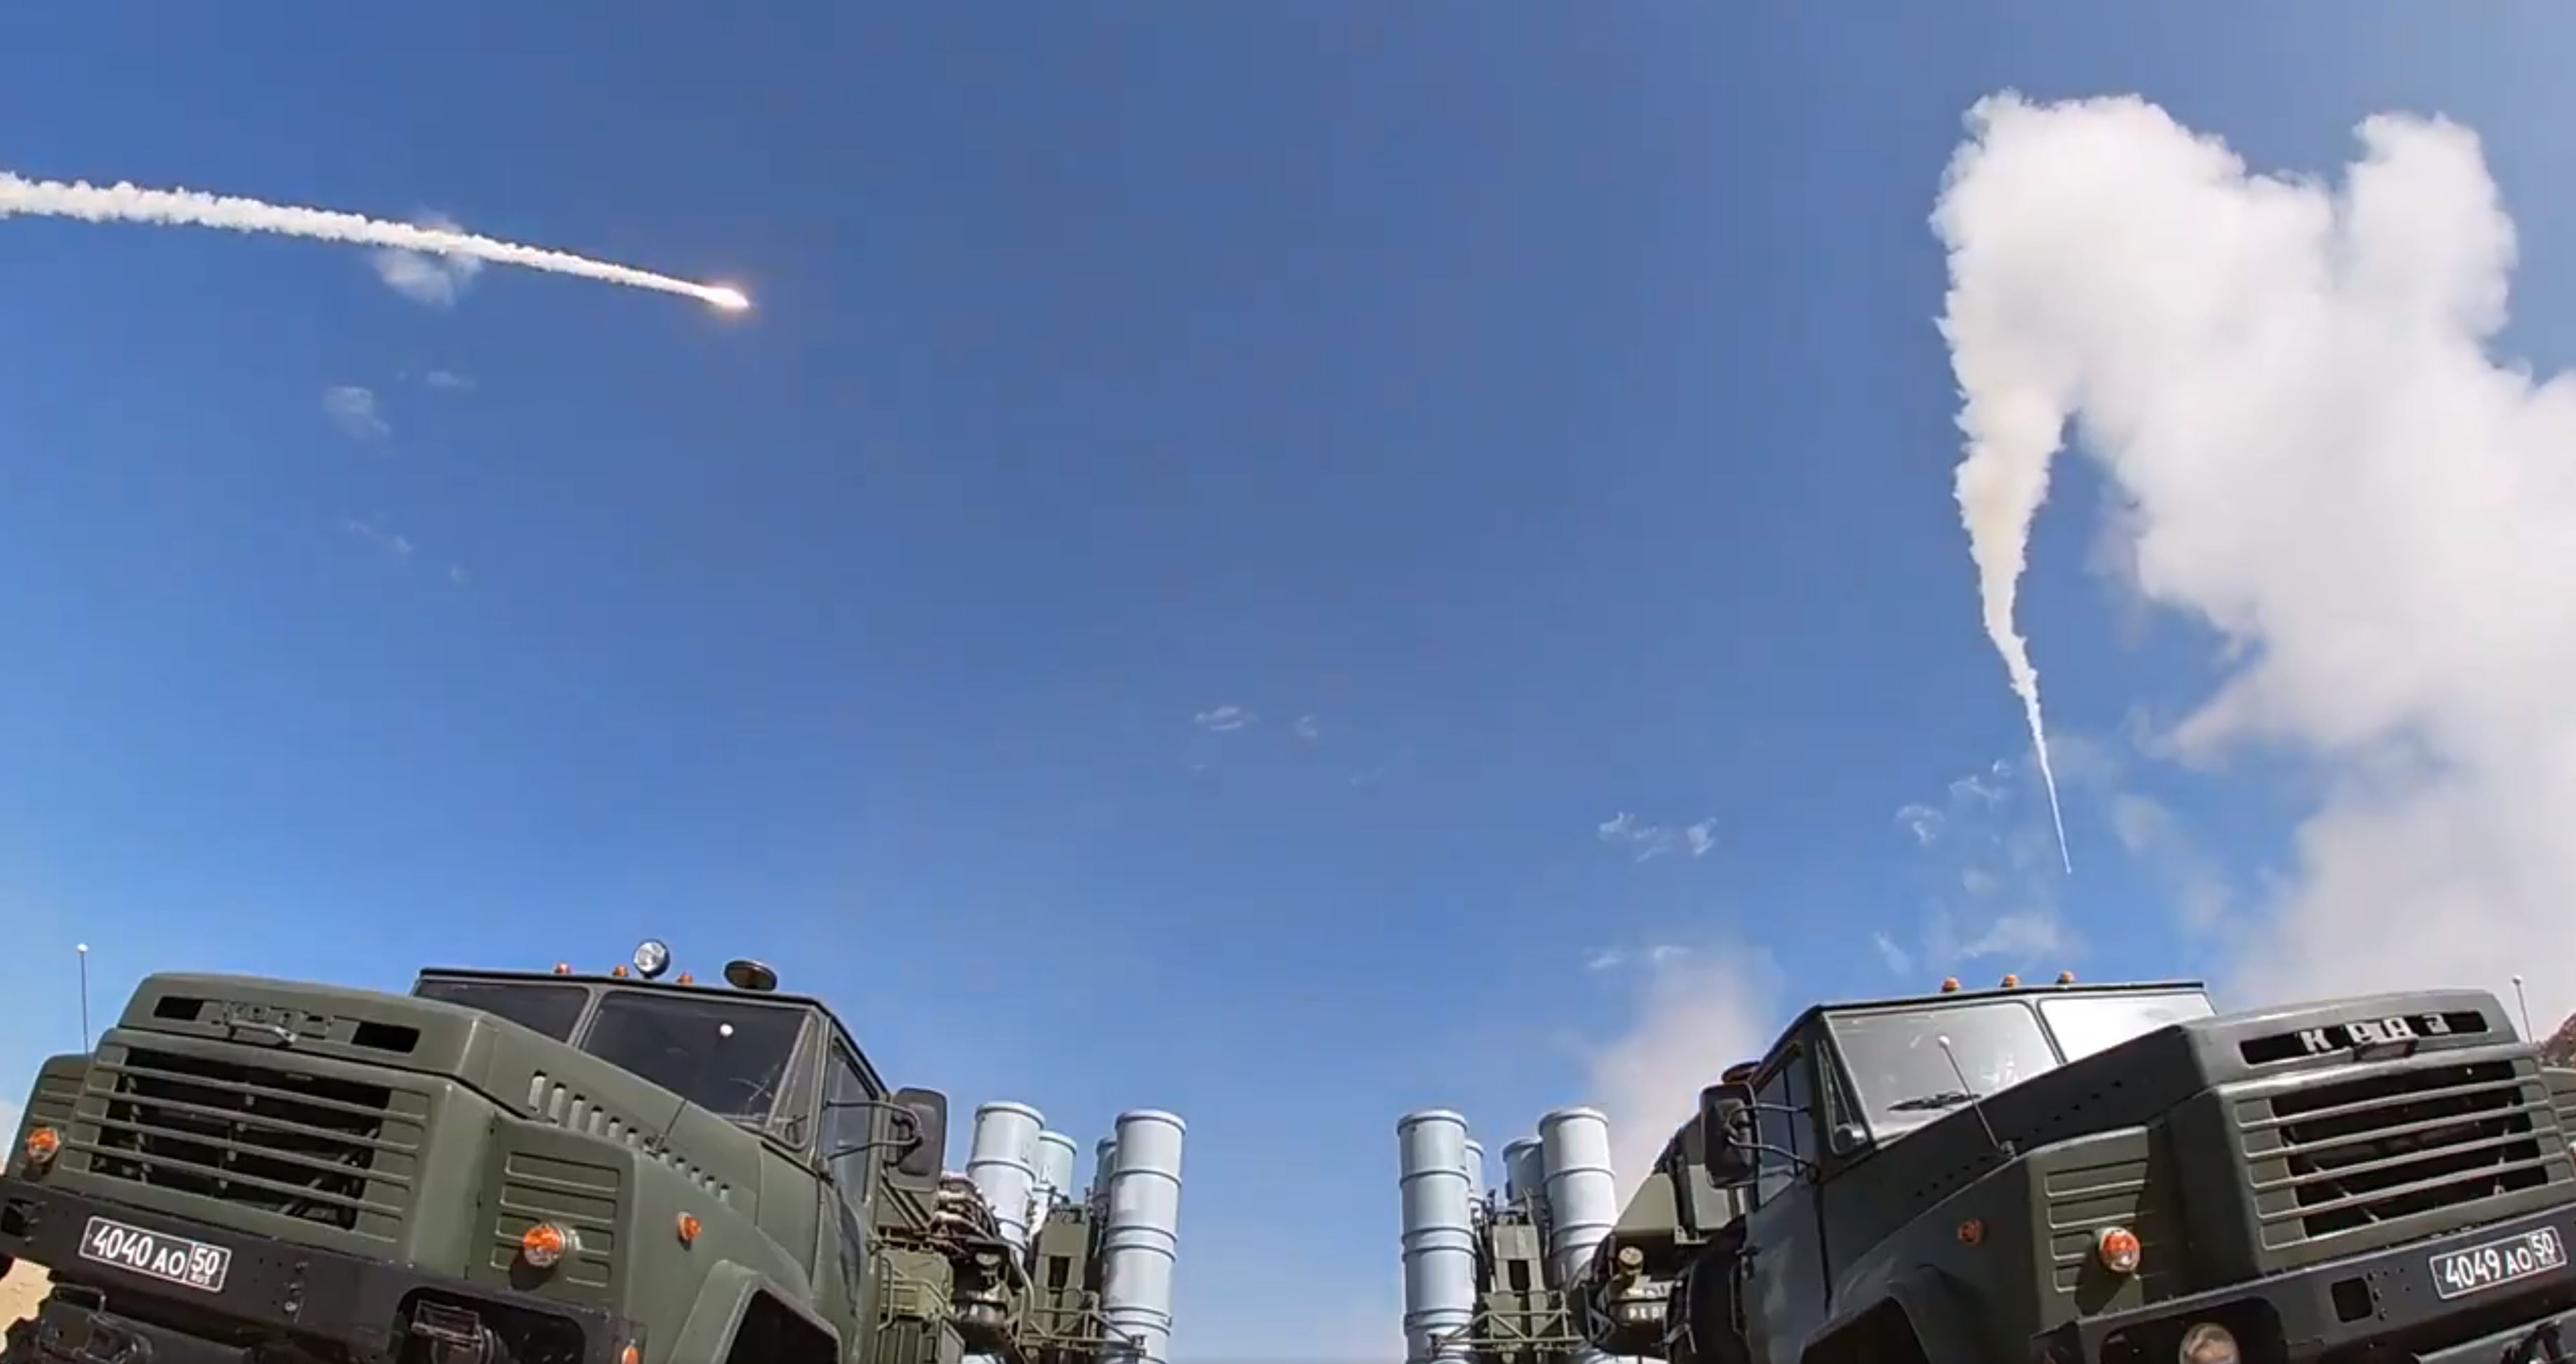 Western MD units S-300 firing at Ashuluk